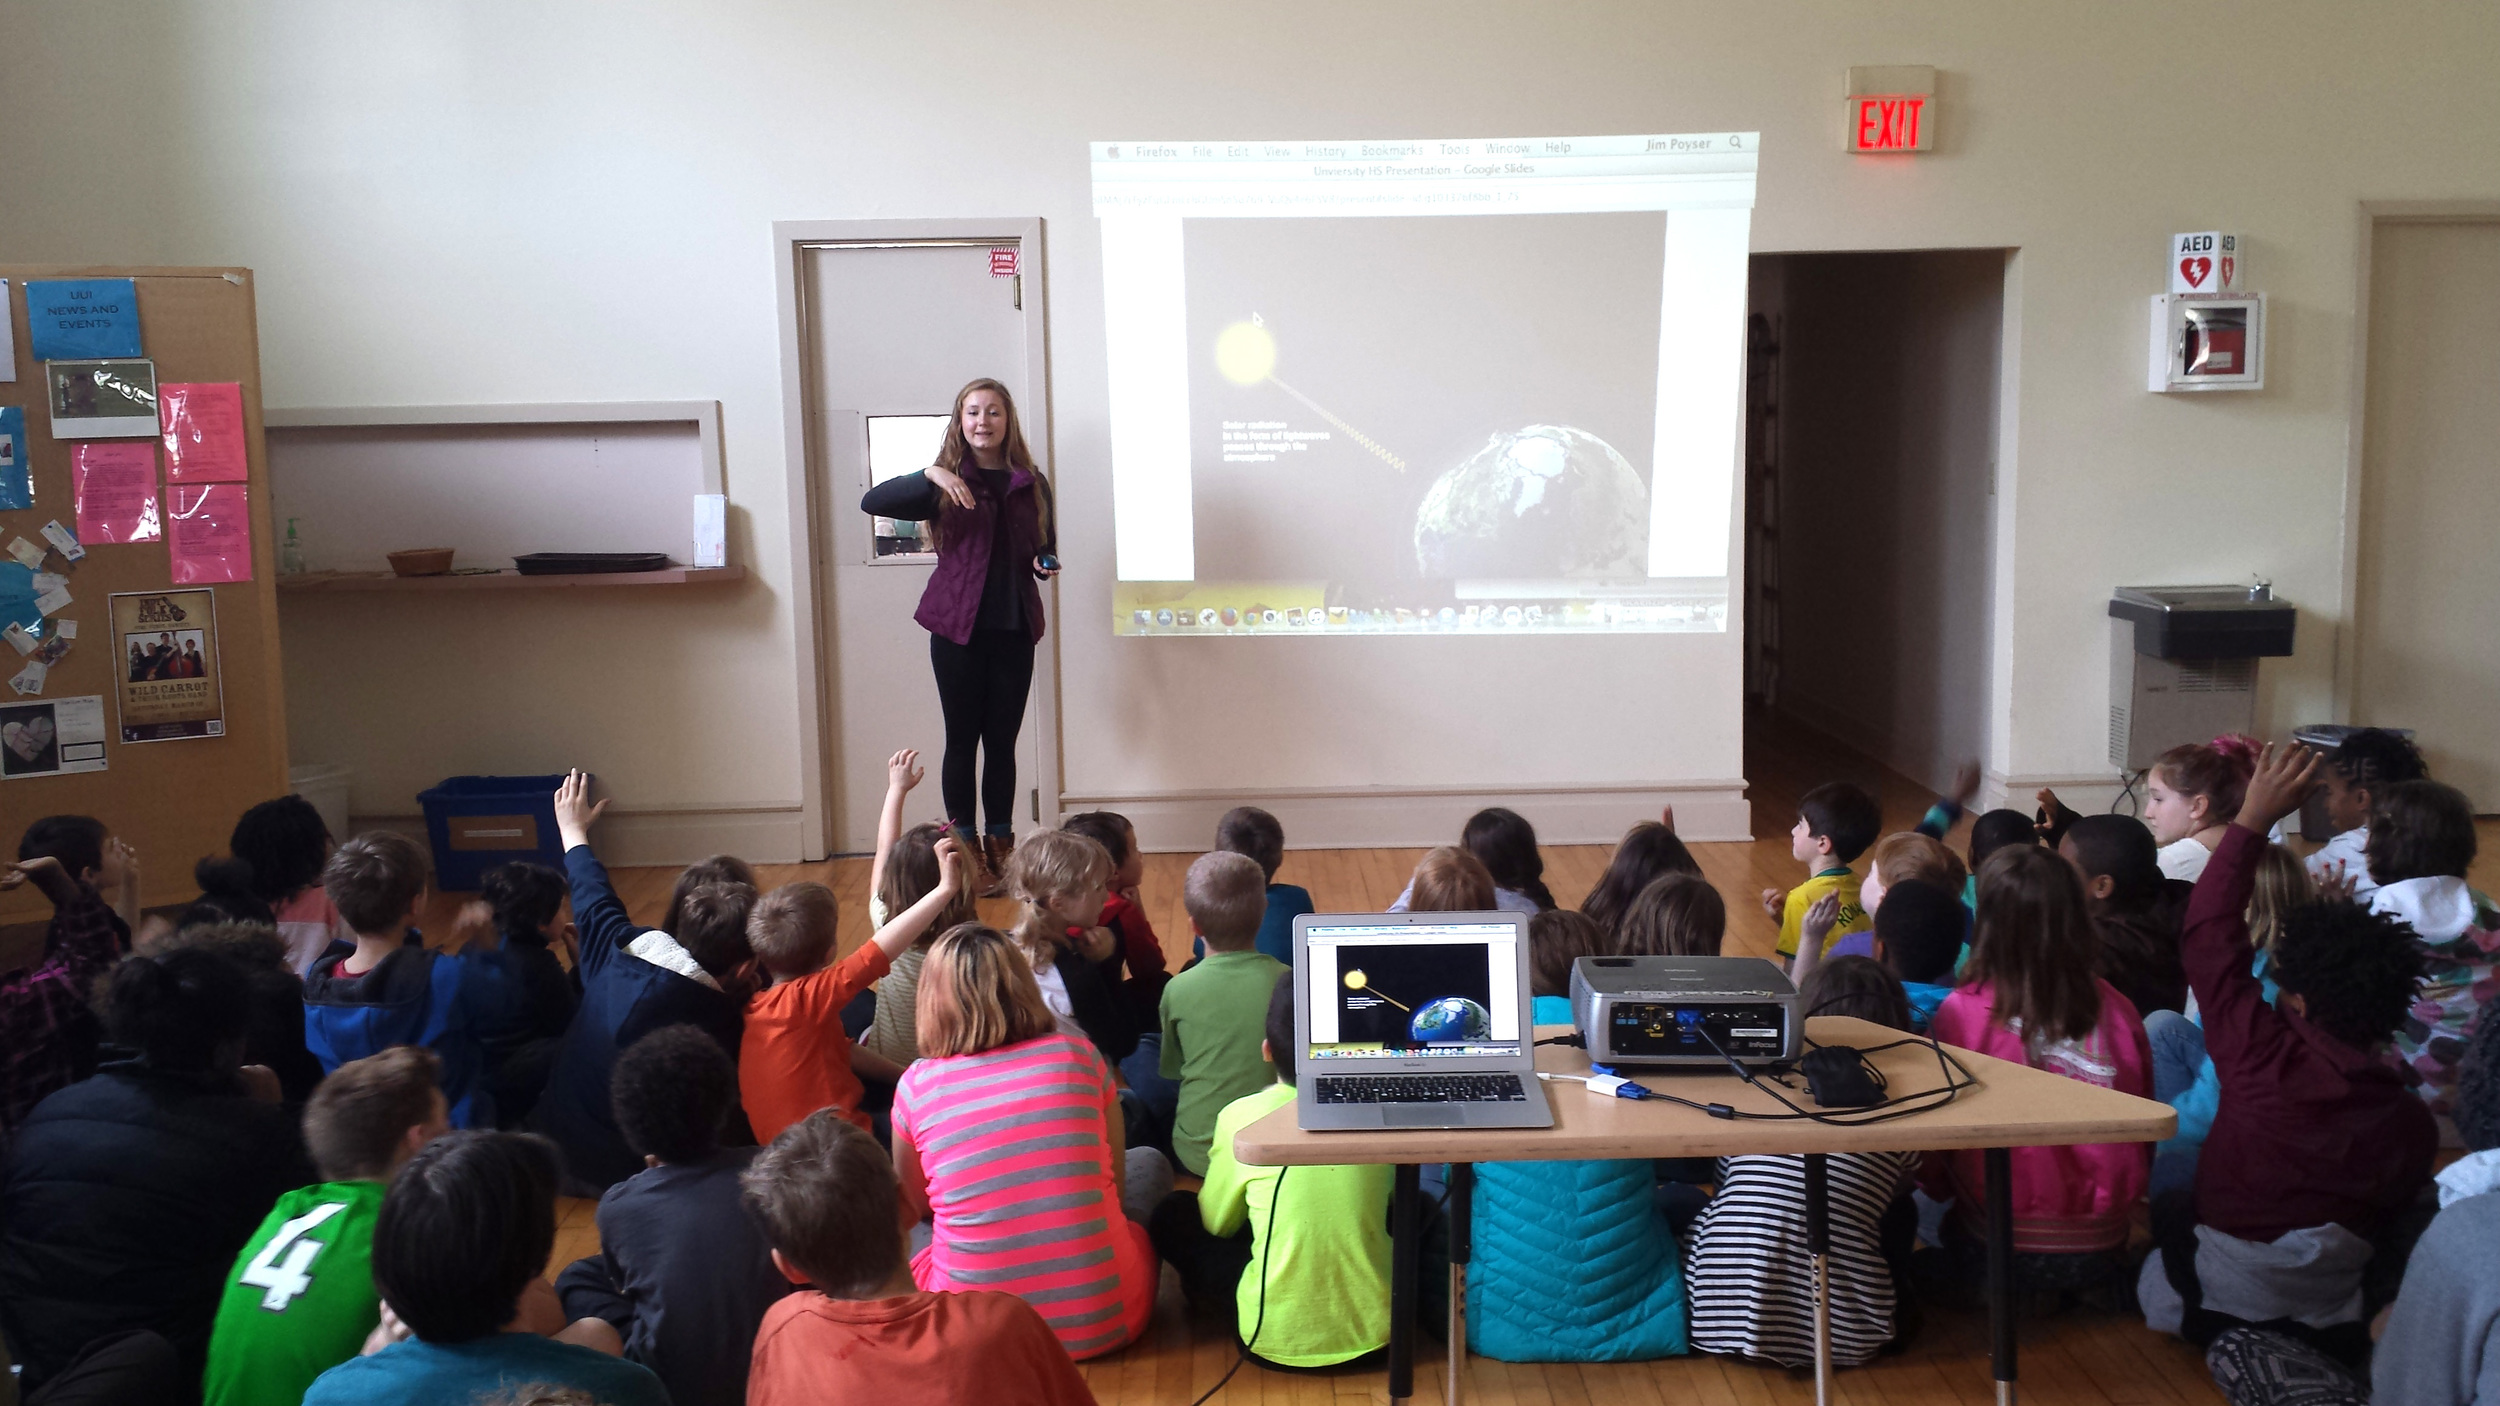 In early 2016, Maddie Adkins, who created the Promise Project in Carmel, spoke at numerous venues in Indianapolis, including School for Community Learning. Students there learned about climate change, and the Climate Recovery actions kids can take.